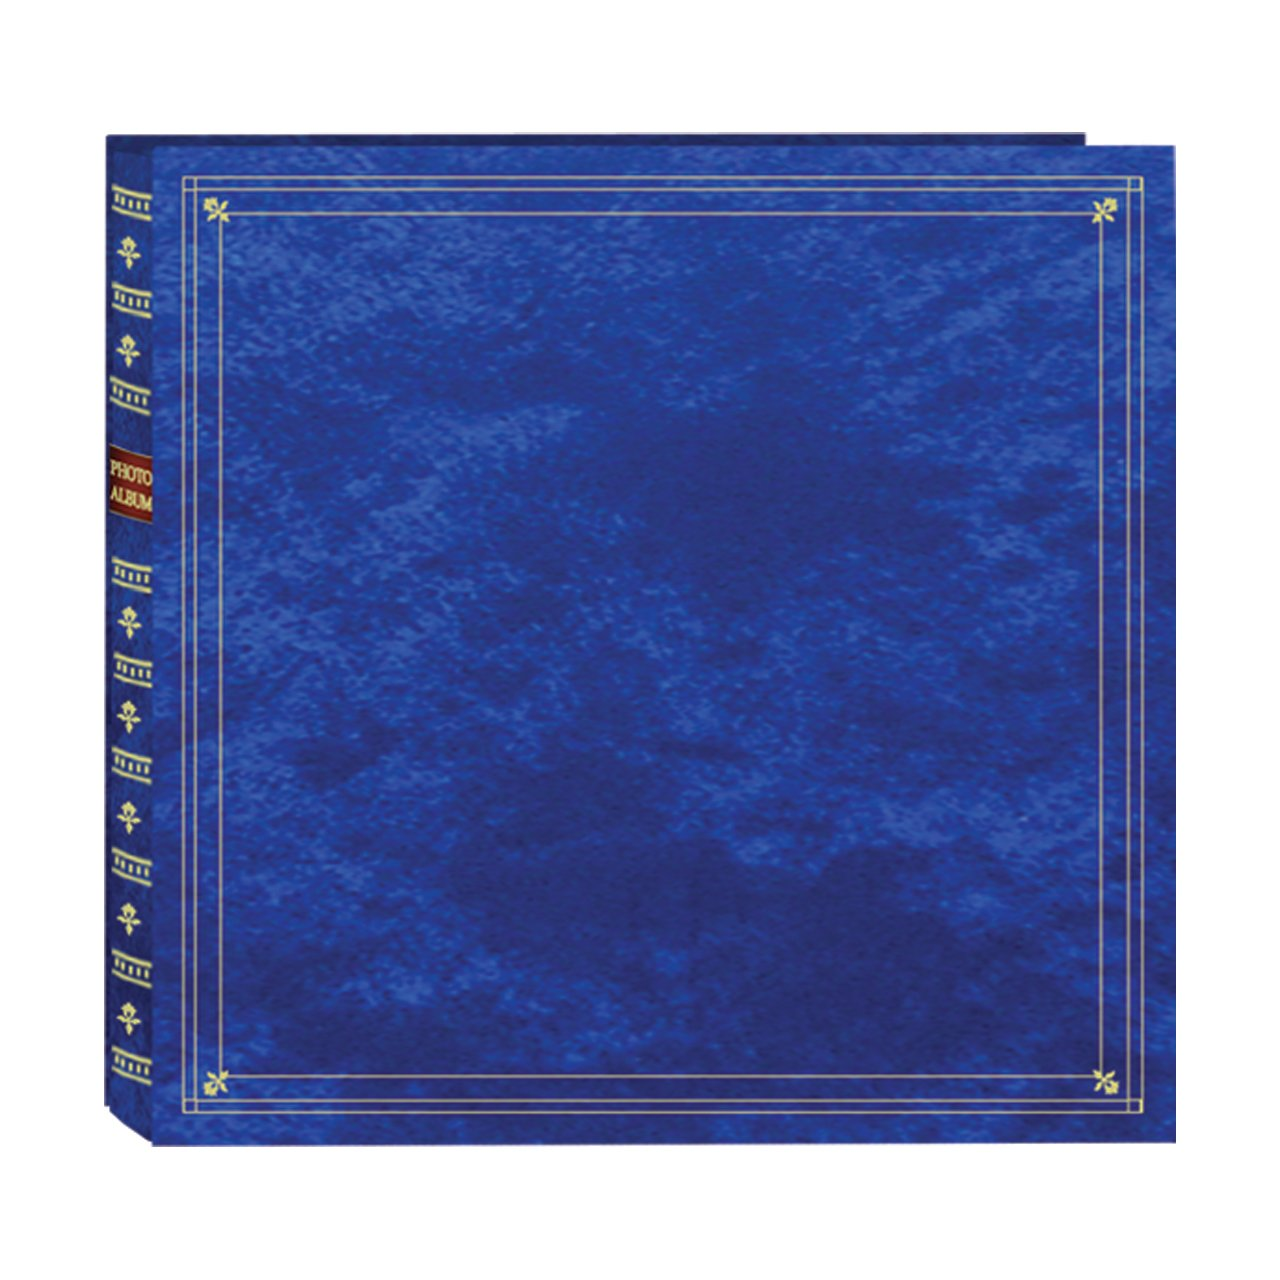 Pioneer Photo Albums 300-Pocket Post Bound Leatherette Cover Photo Album for 3.5 by 5.25-Inch Prints, Royal Blue MP-300/RB